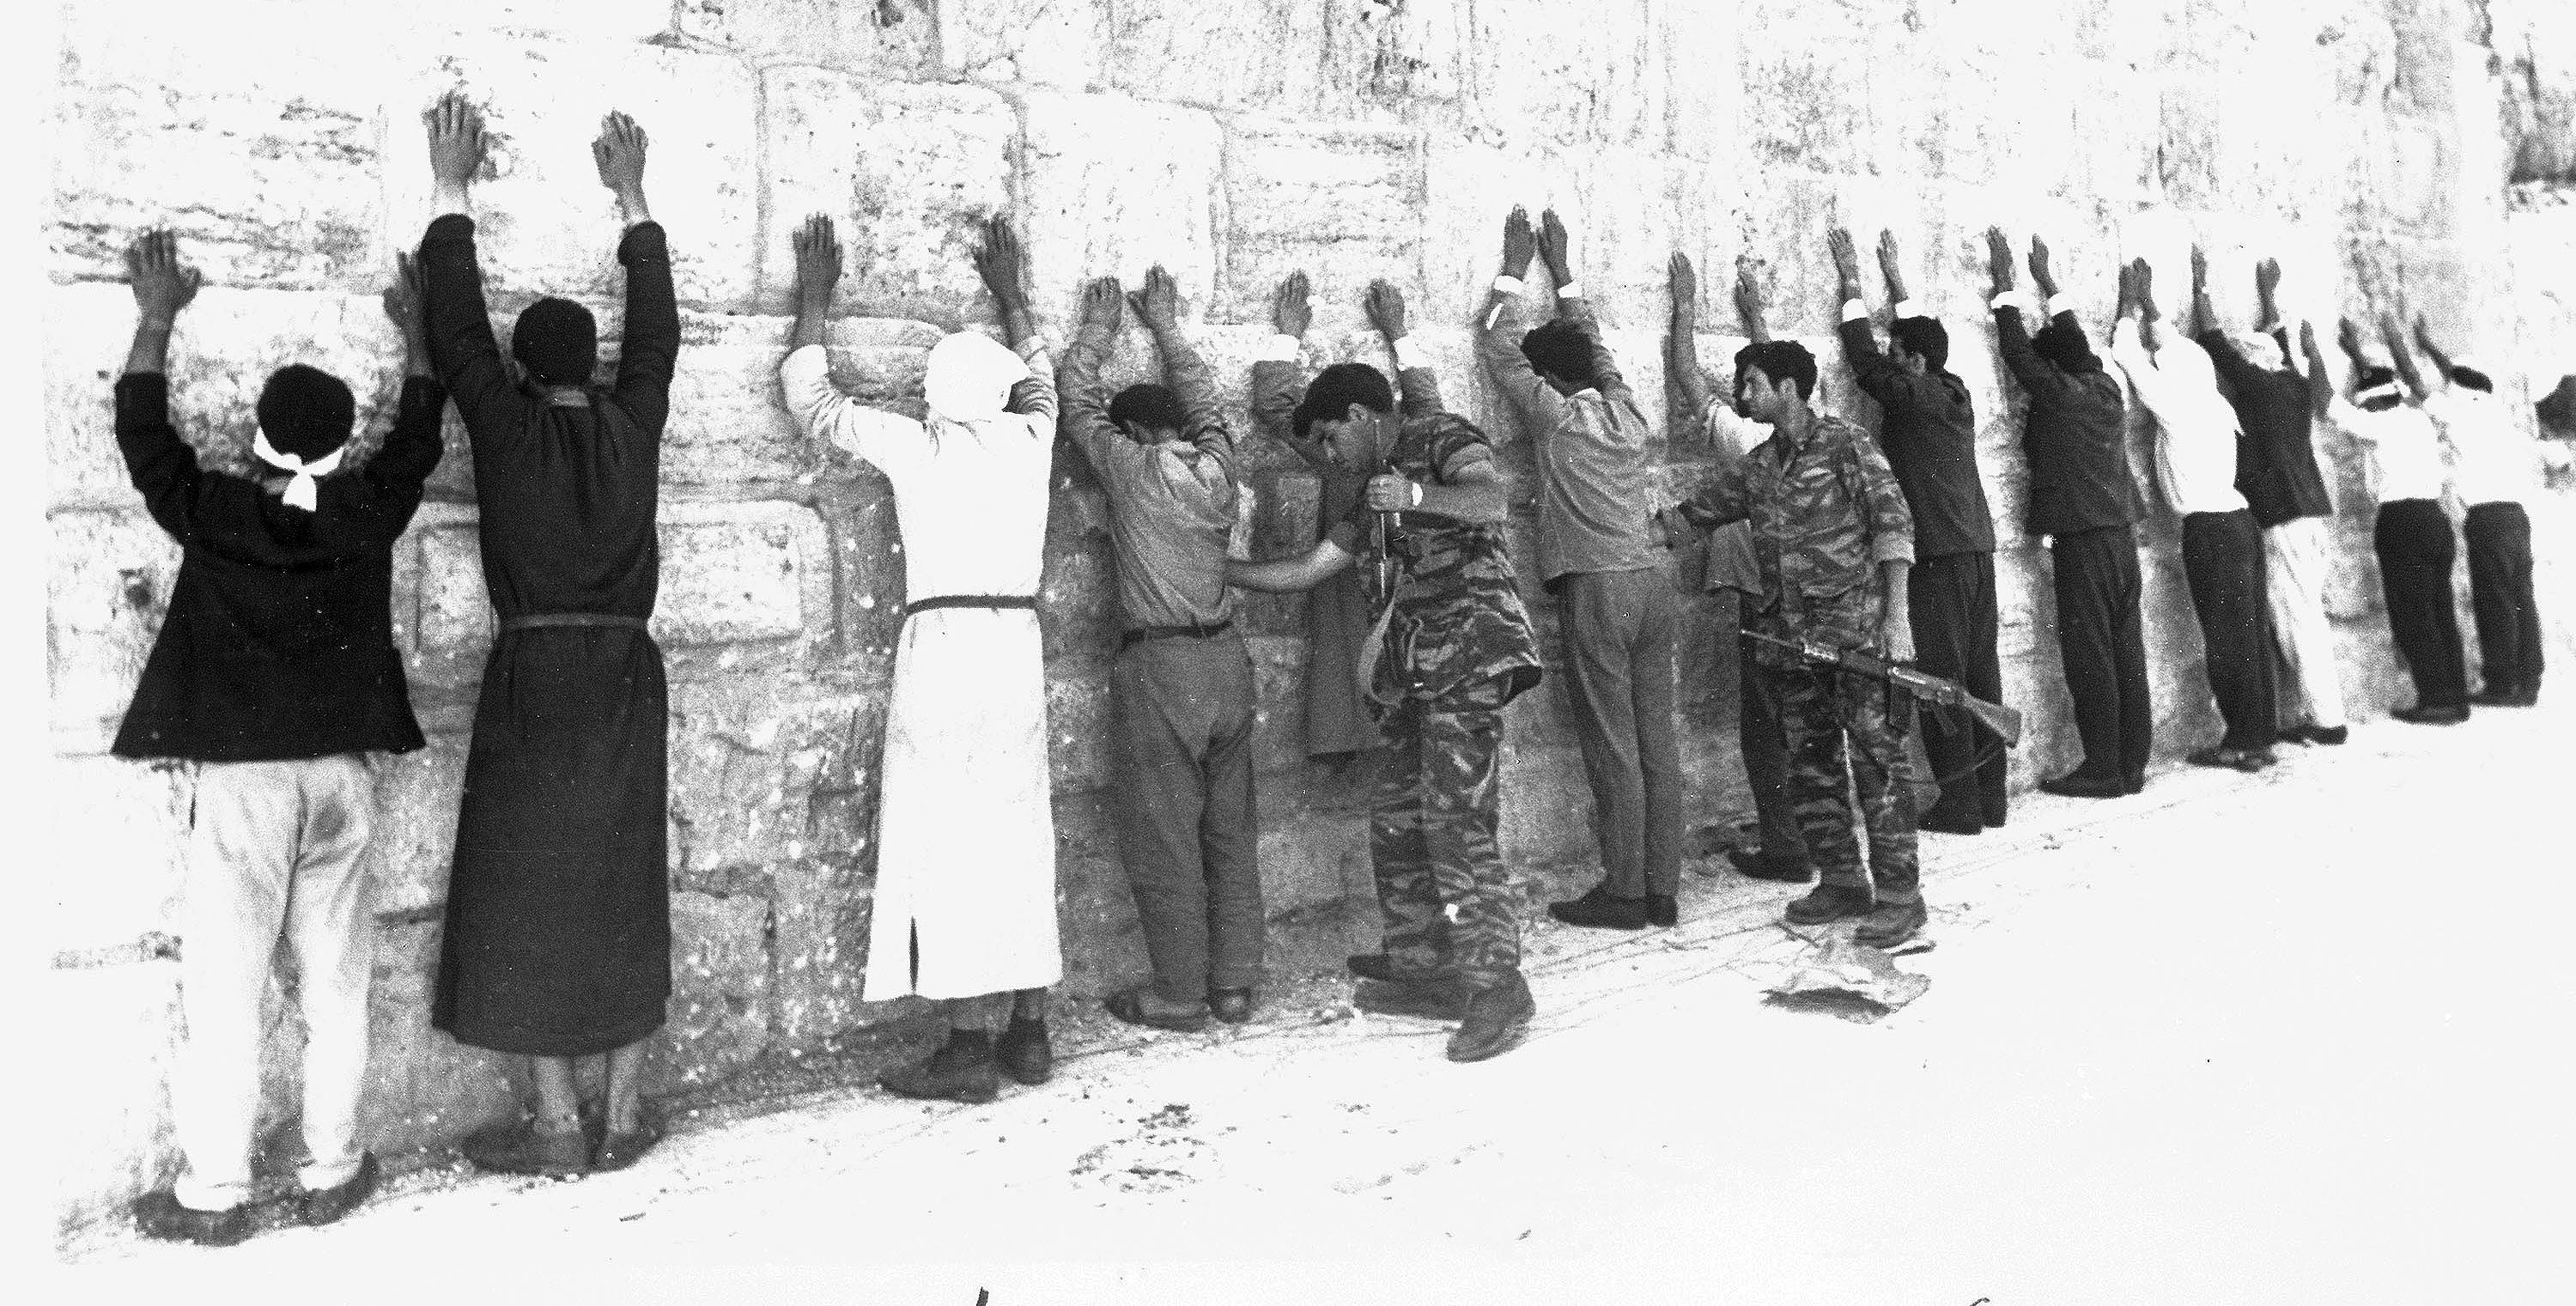 A 50-Year Occupation: Israel's Six-Day War Started With a Lie